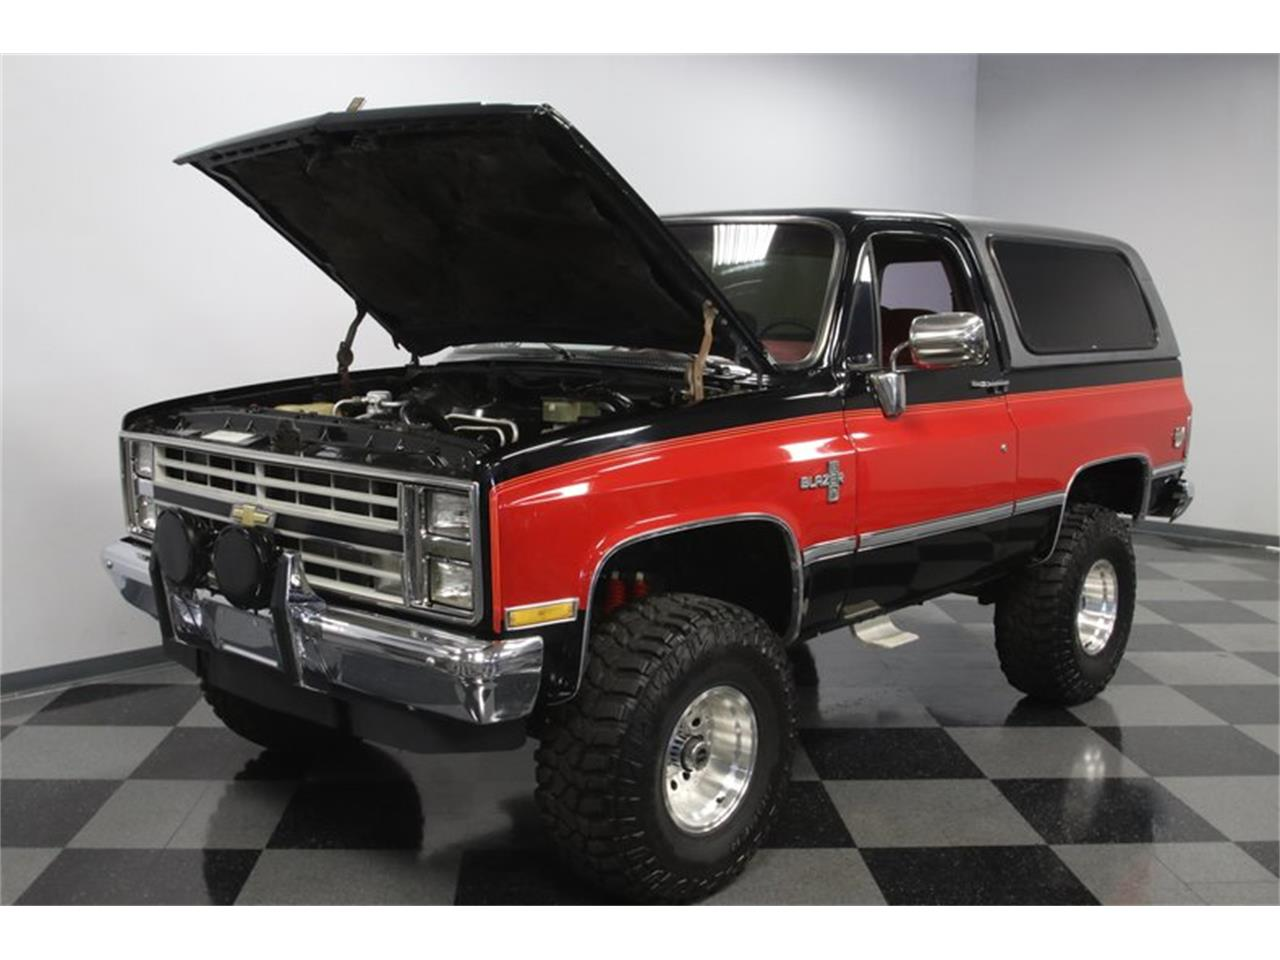 Large Picture of '88 Chevrolet Blazer located in North Carolina - $26,995.00 - QEFQ